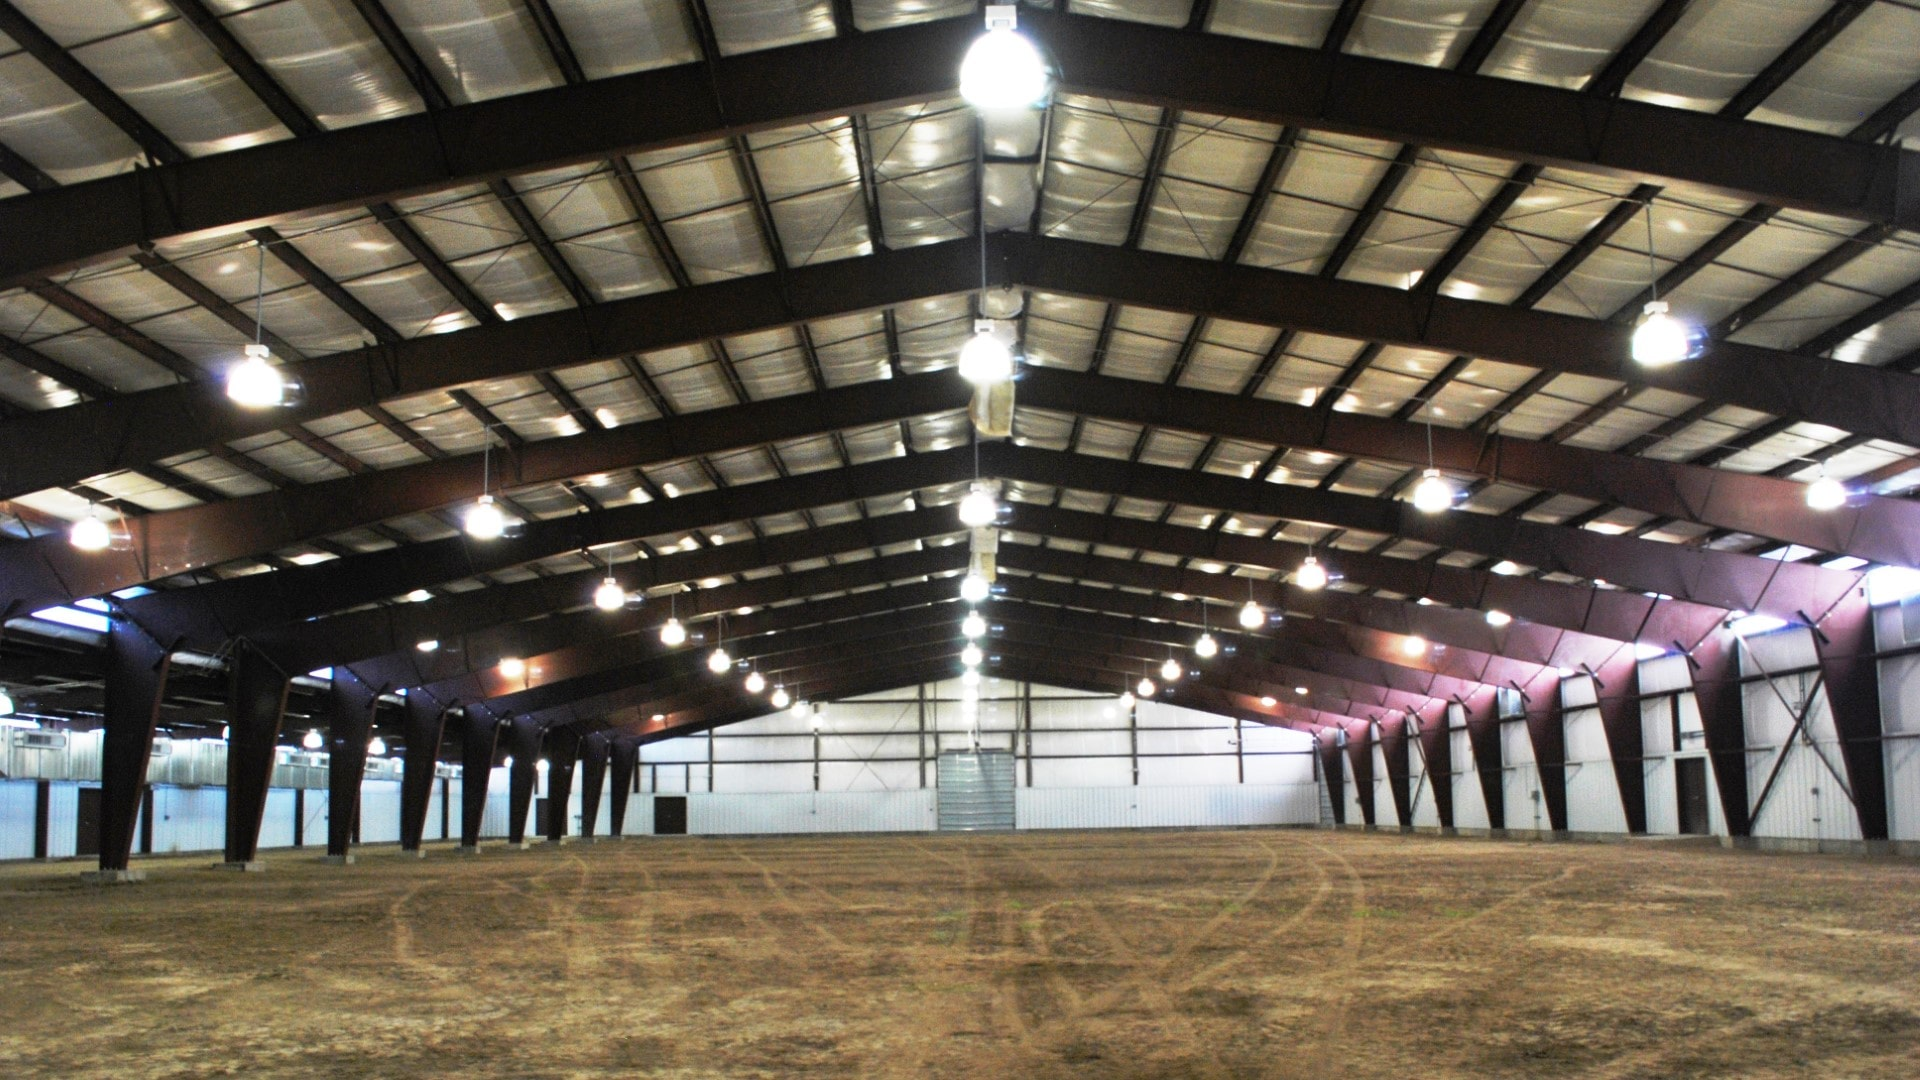 Colorado Fairgrounds clearspan steel riding arena indoor view looking down the length of arena.